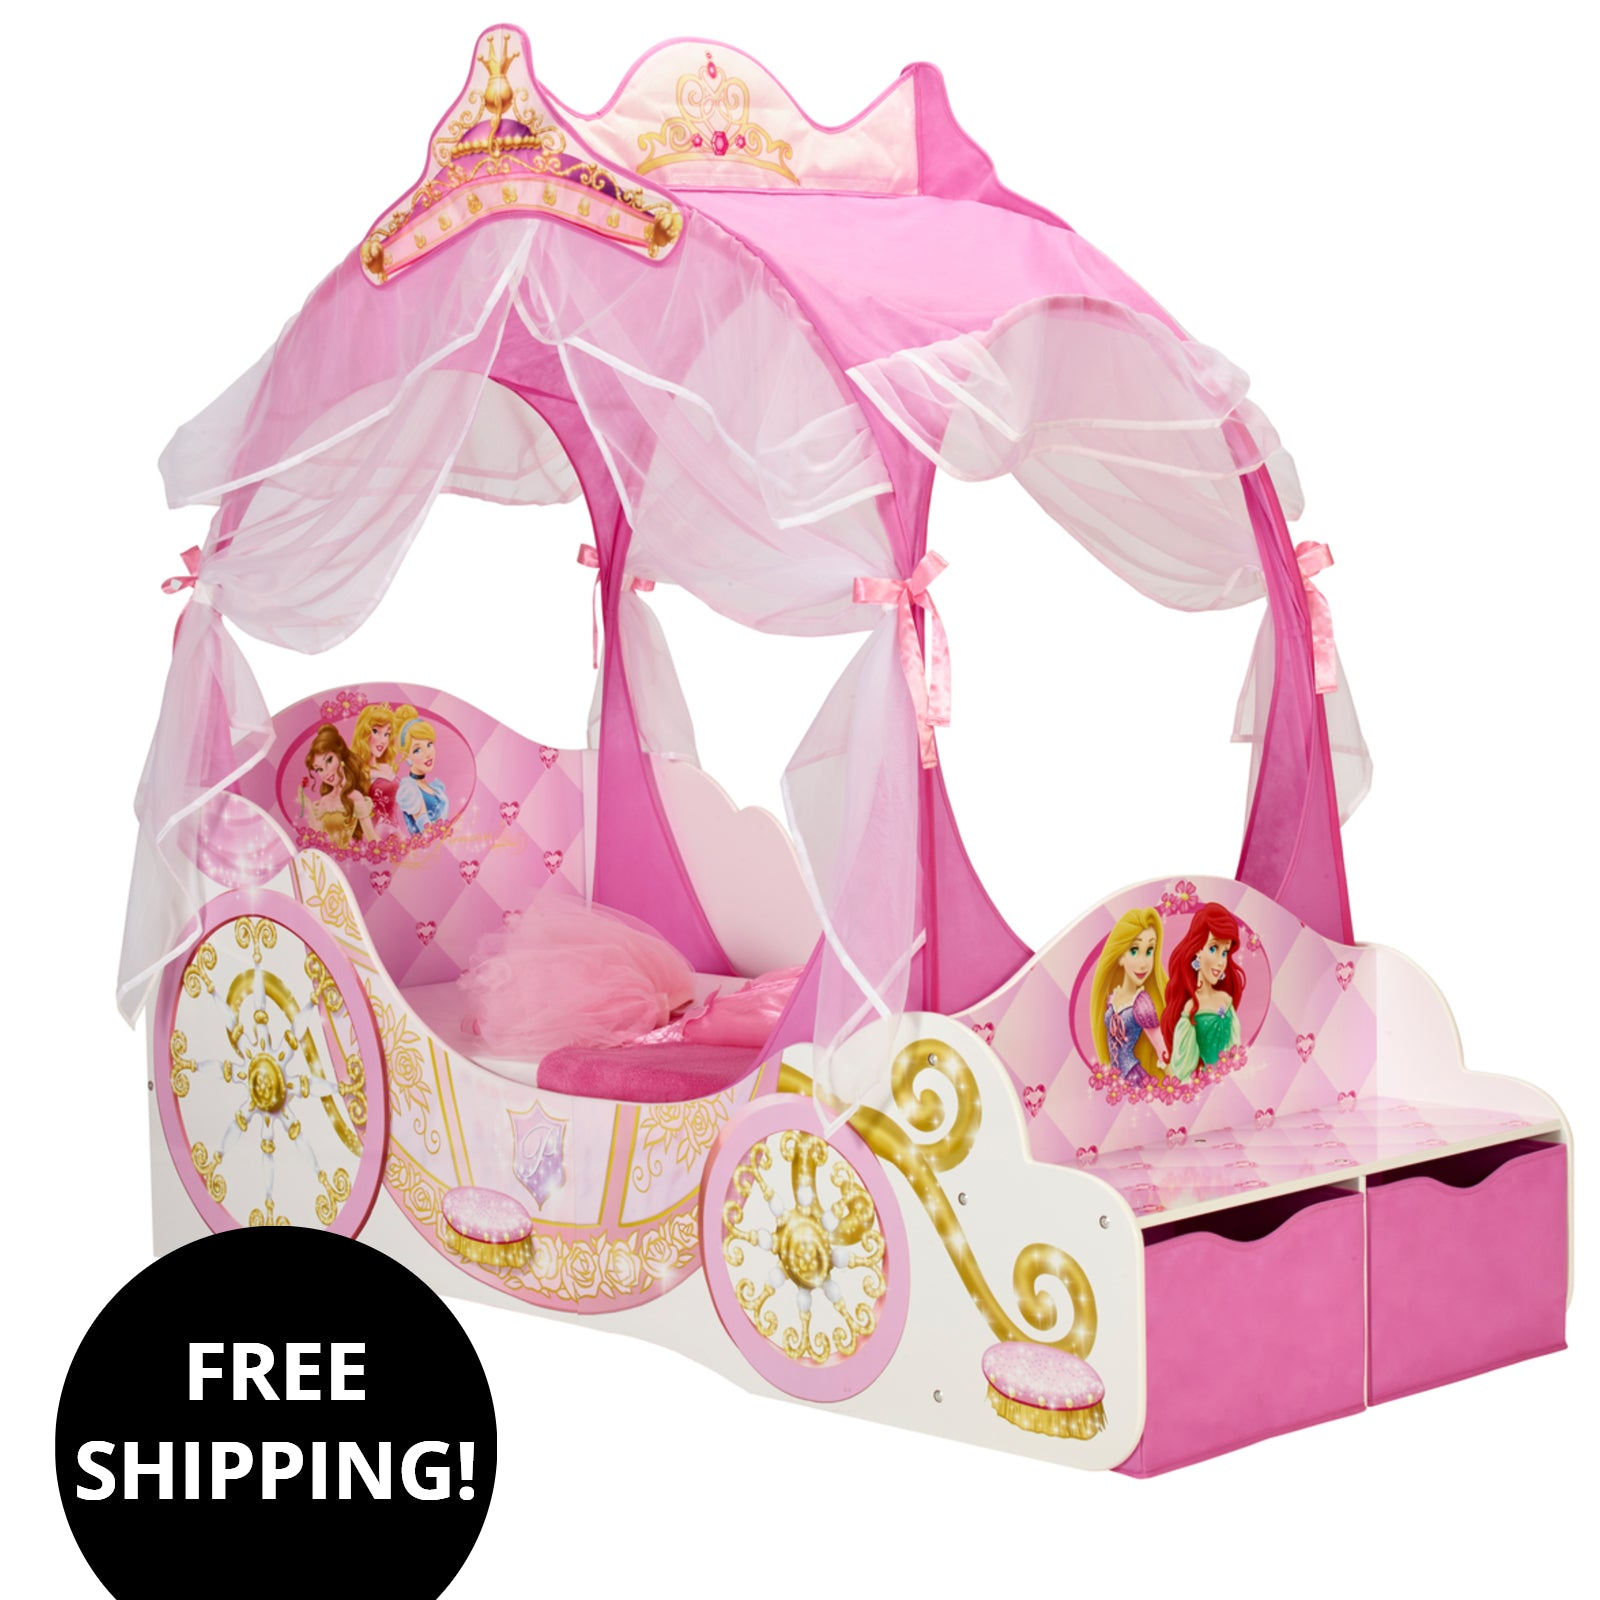 Disney Princess Carriage Toddler Bed With Canopy ...